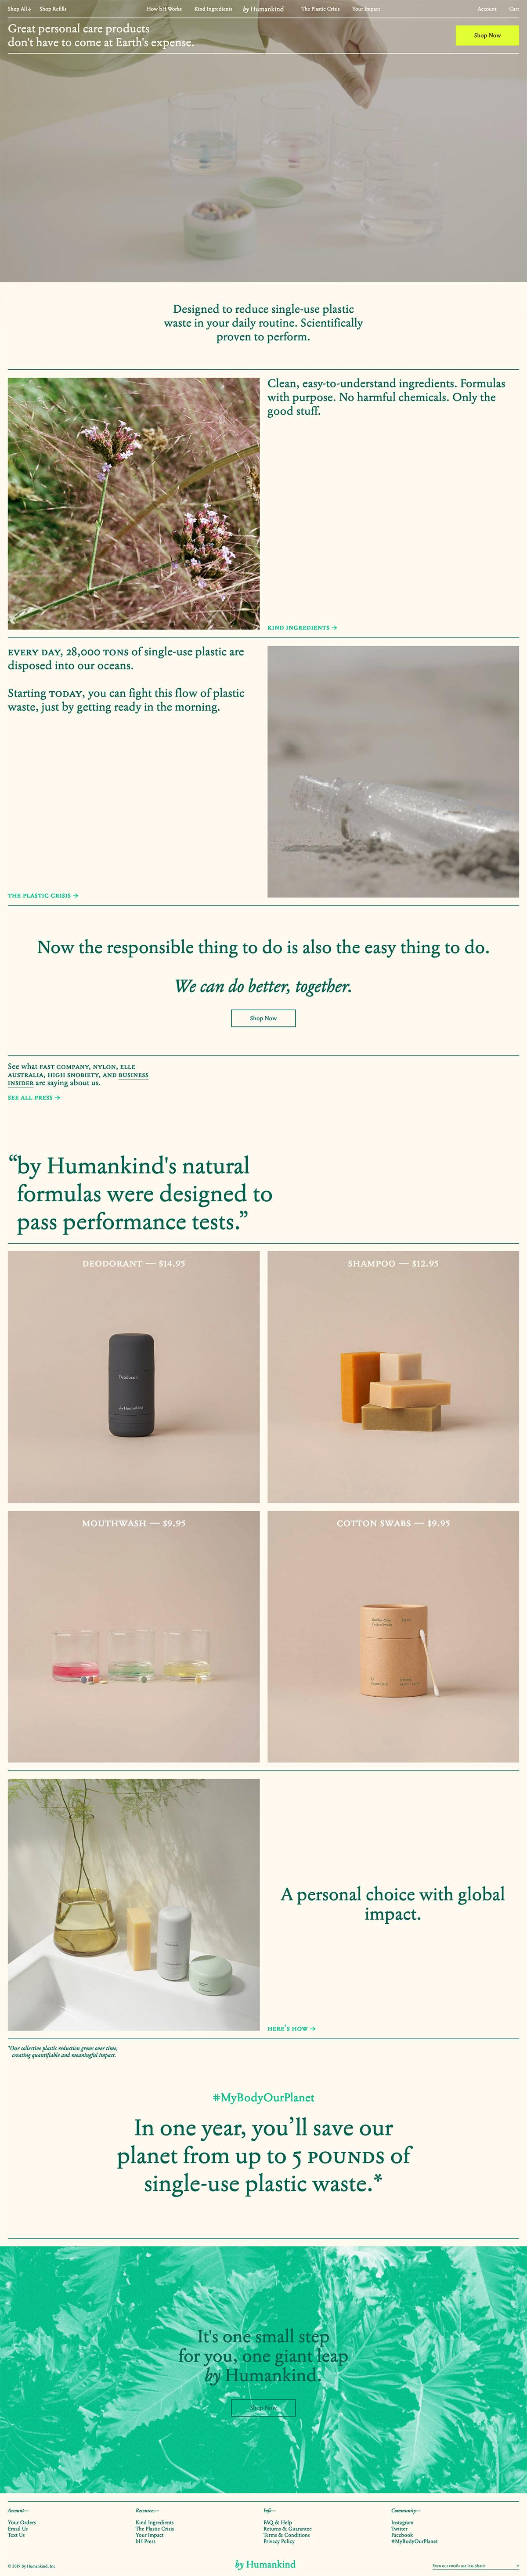 eCommerce website: by Humankind